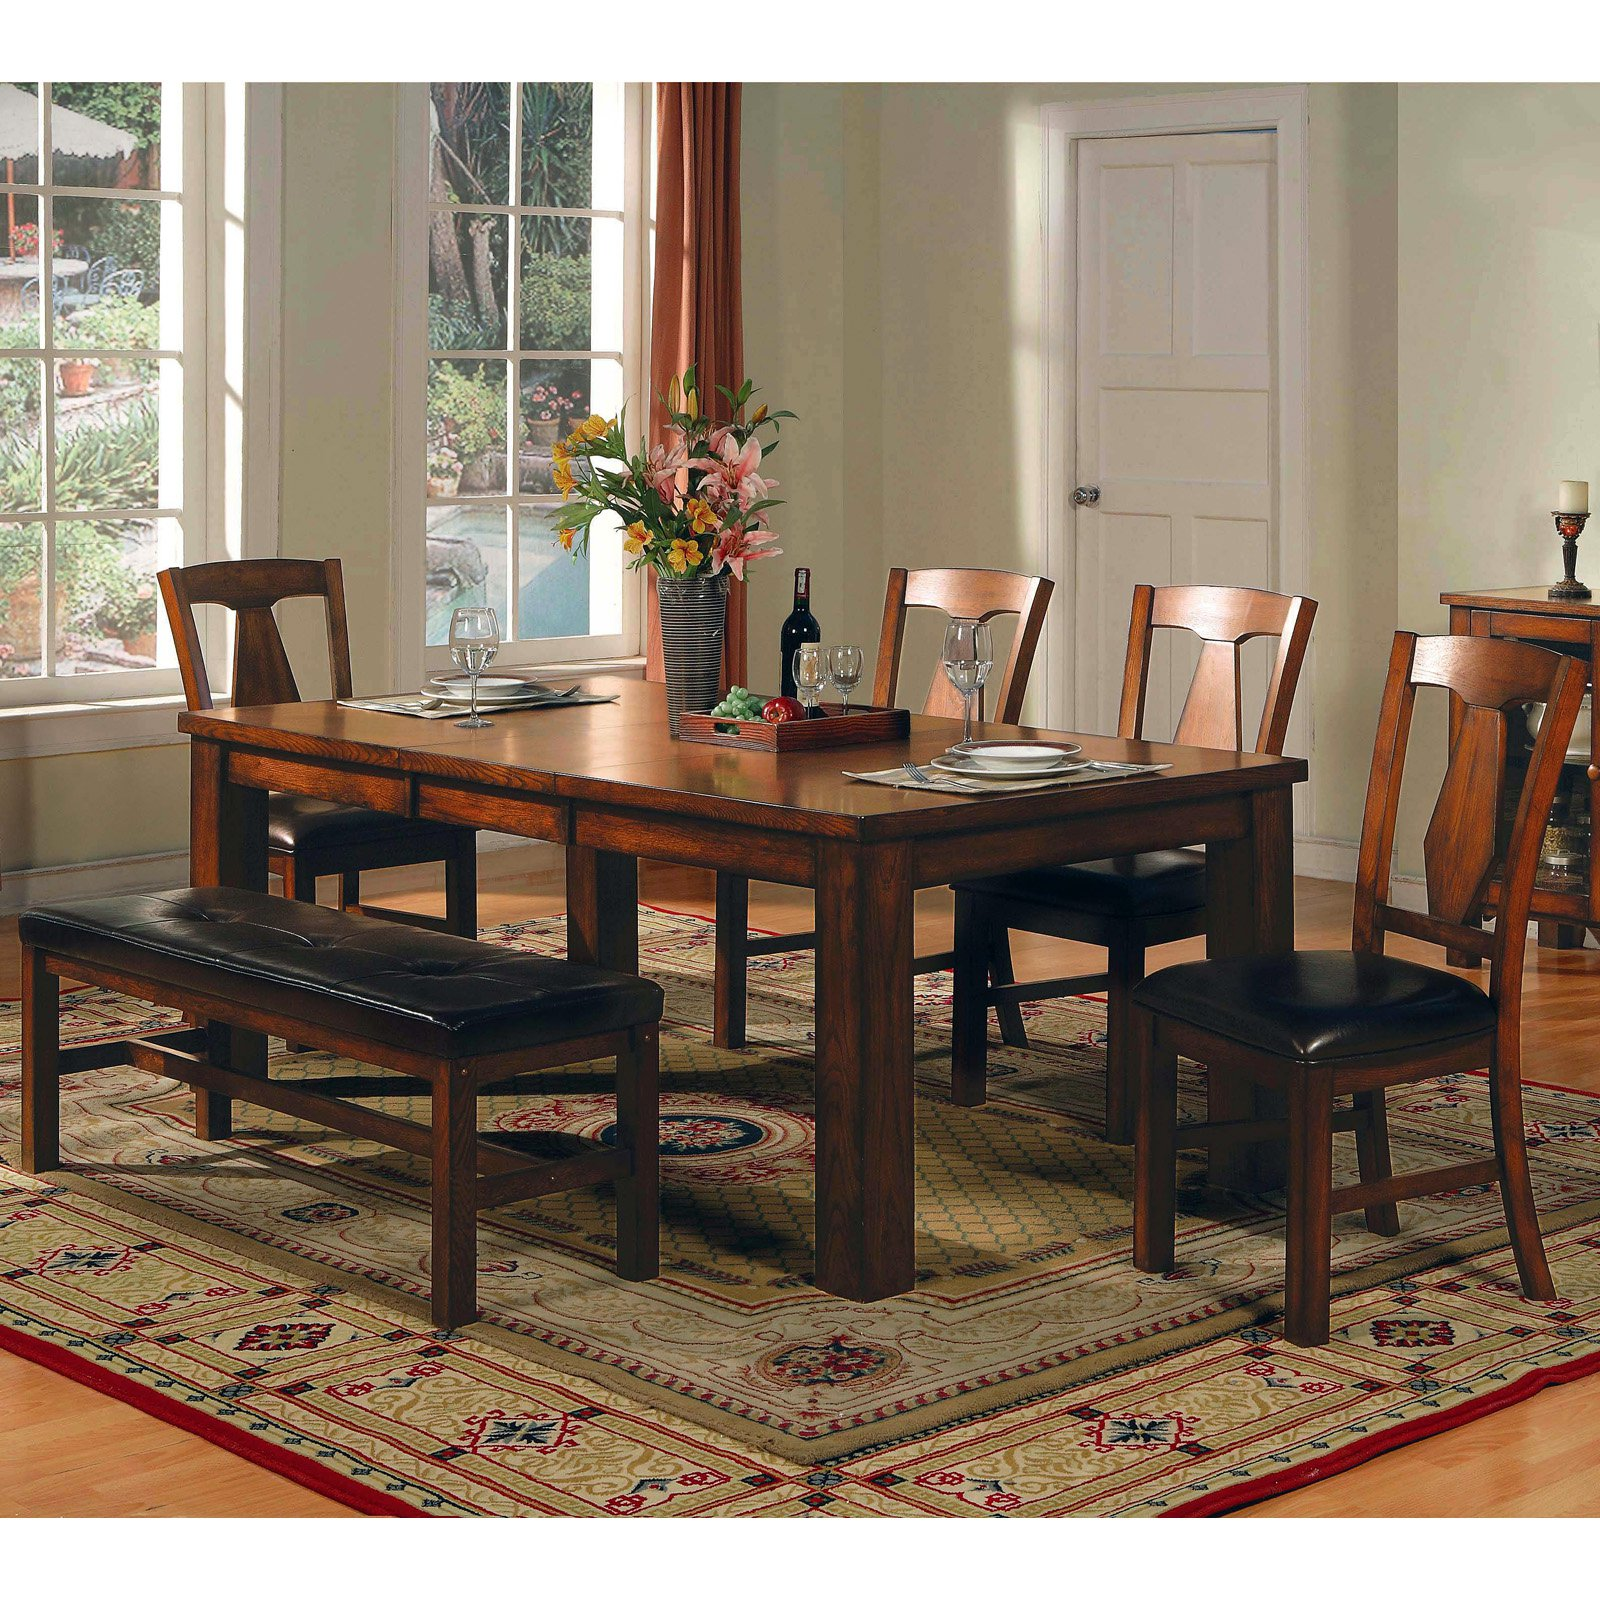 Steve Silver Lakewood 6 Piece Dining Table Set   Walmart.com